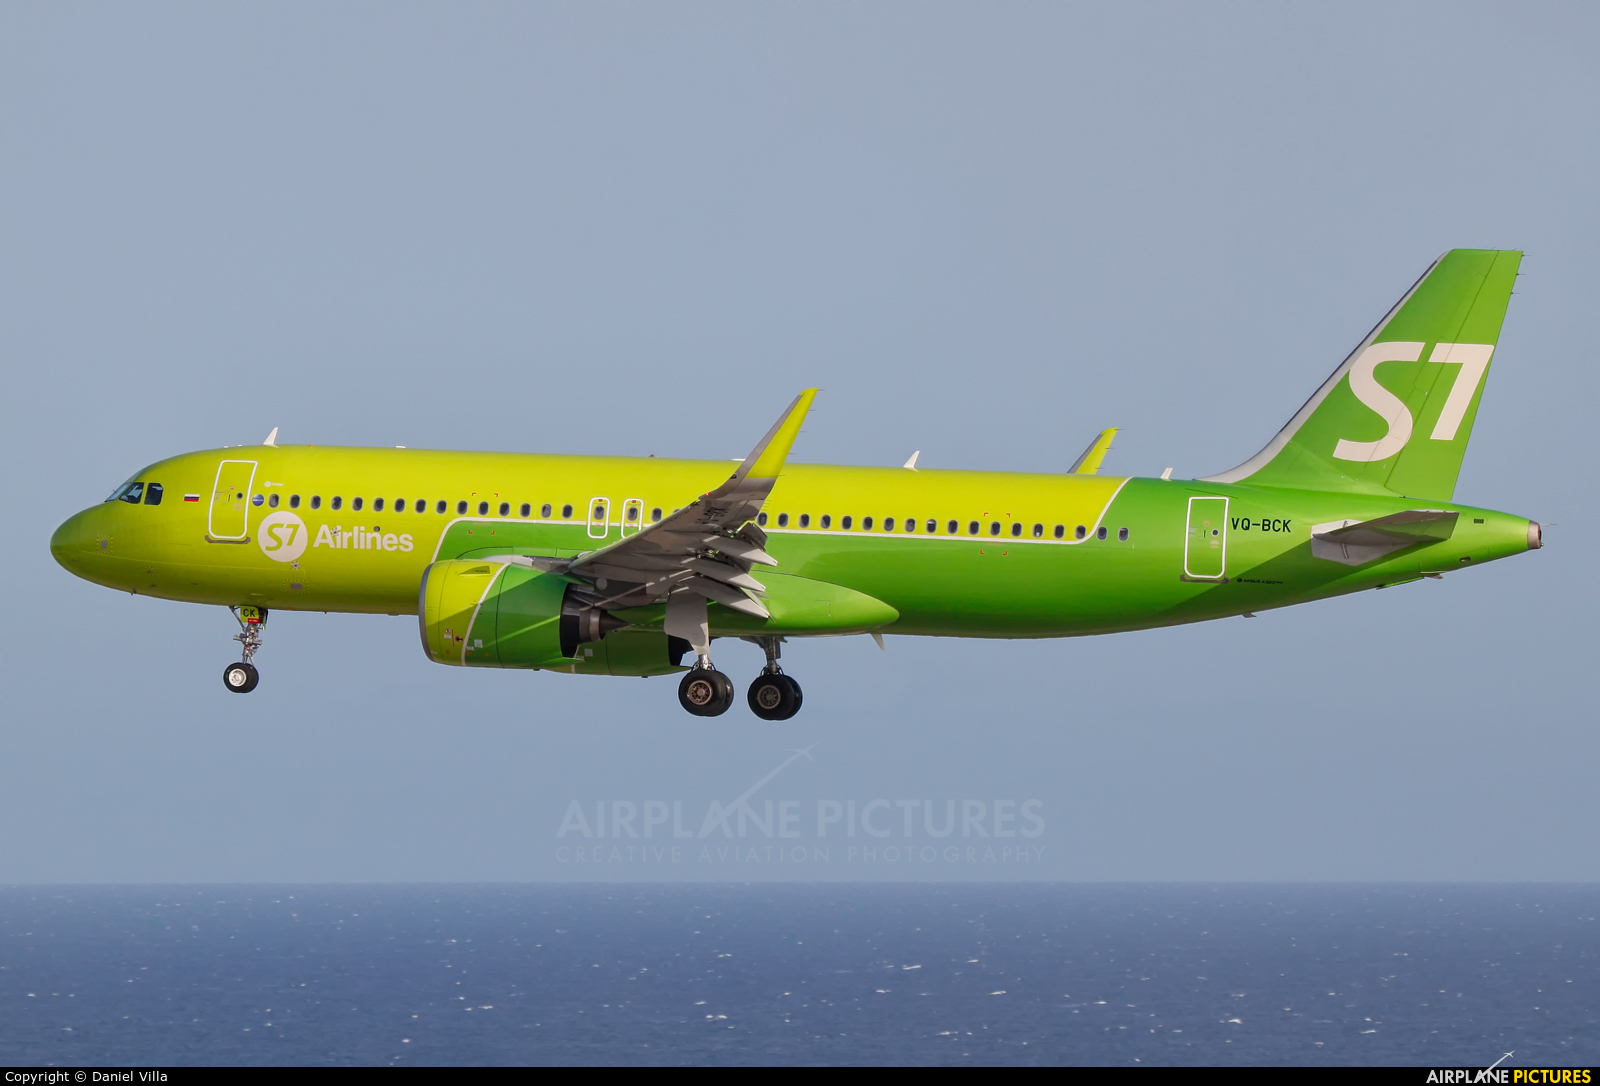 S7 Airlines VQ-BCK aircraft at Tenerife Sur - Reina Sofia